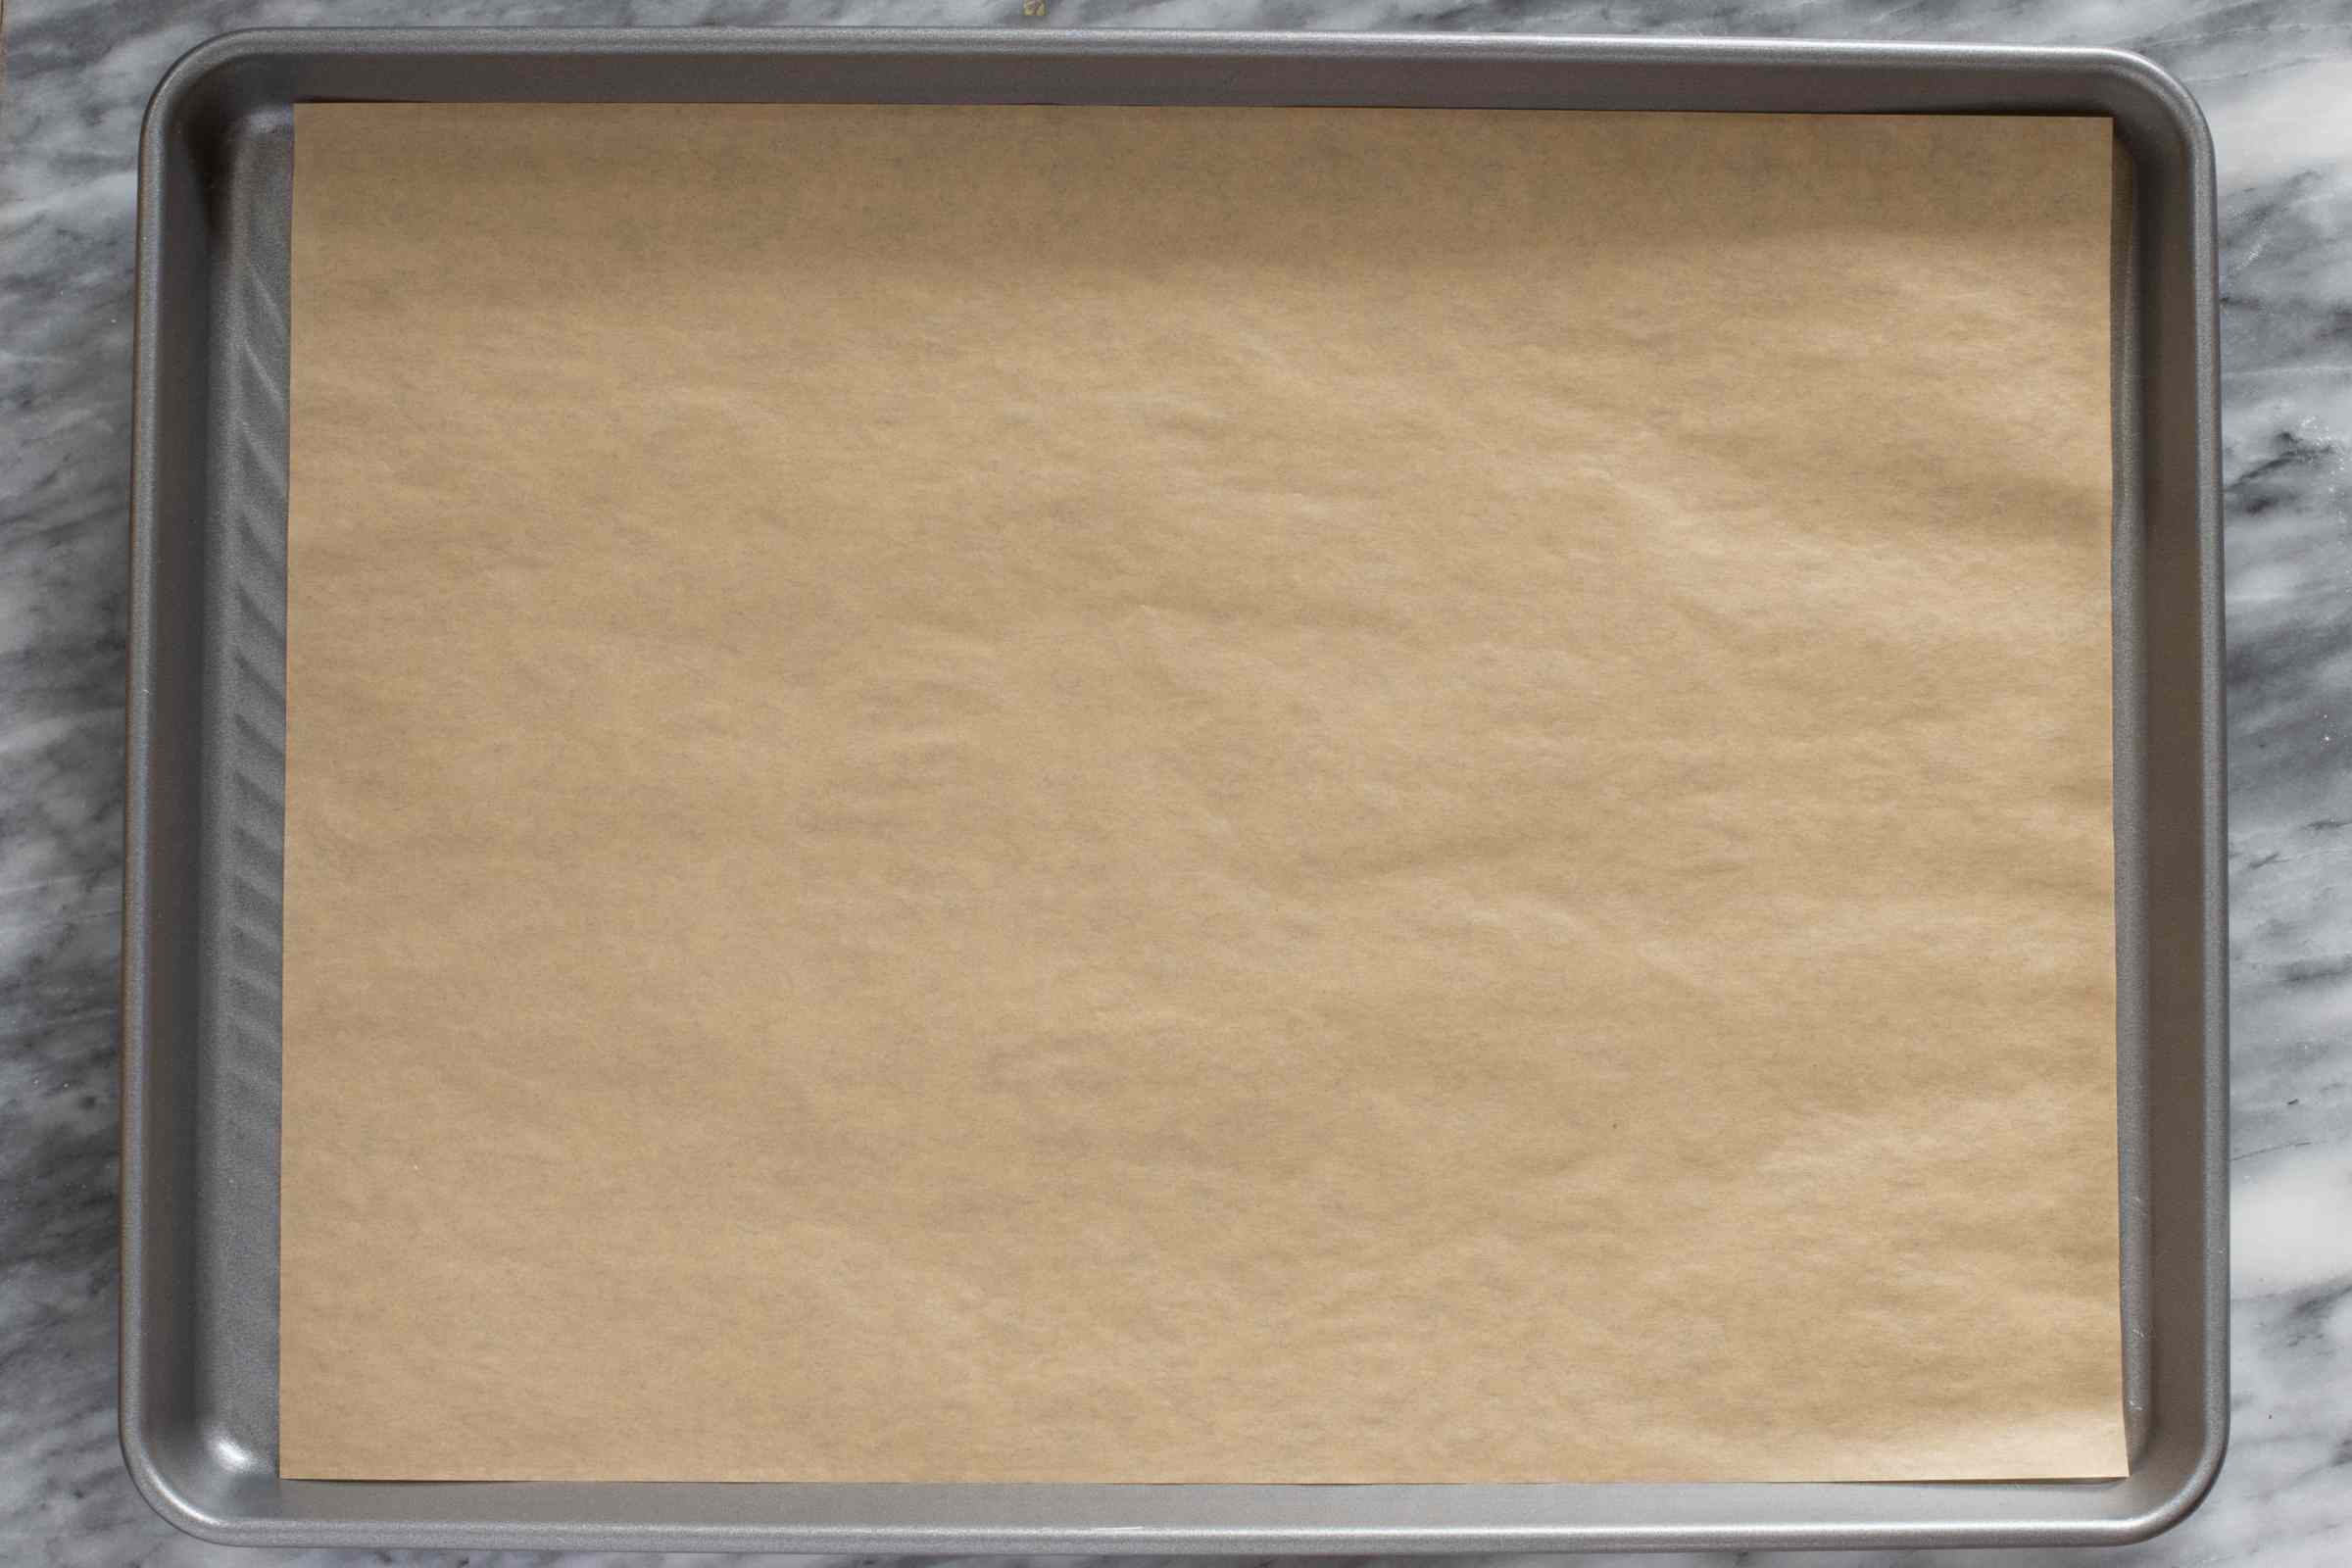 Baking sheet with parchment paper.